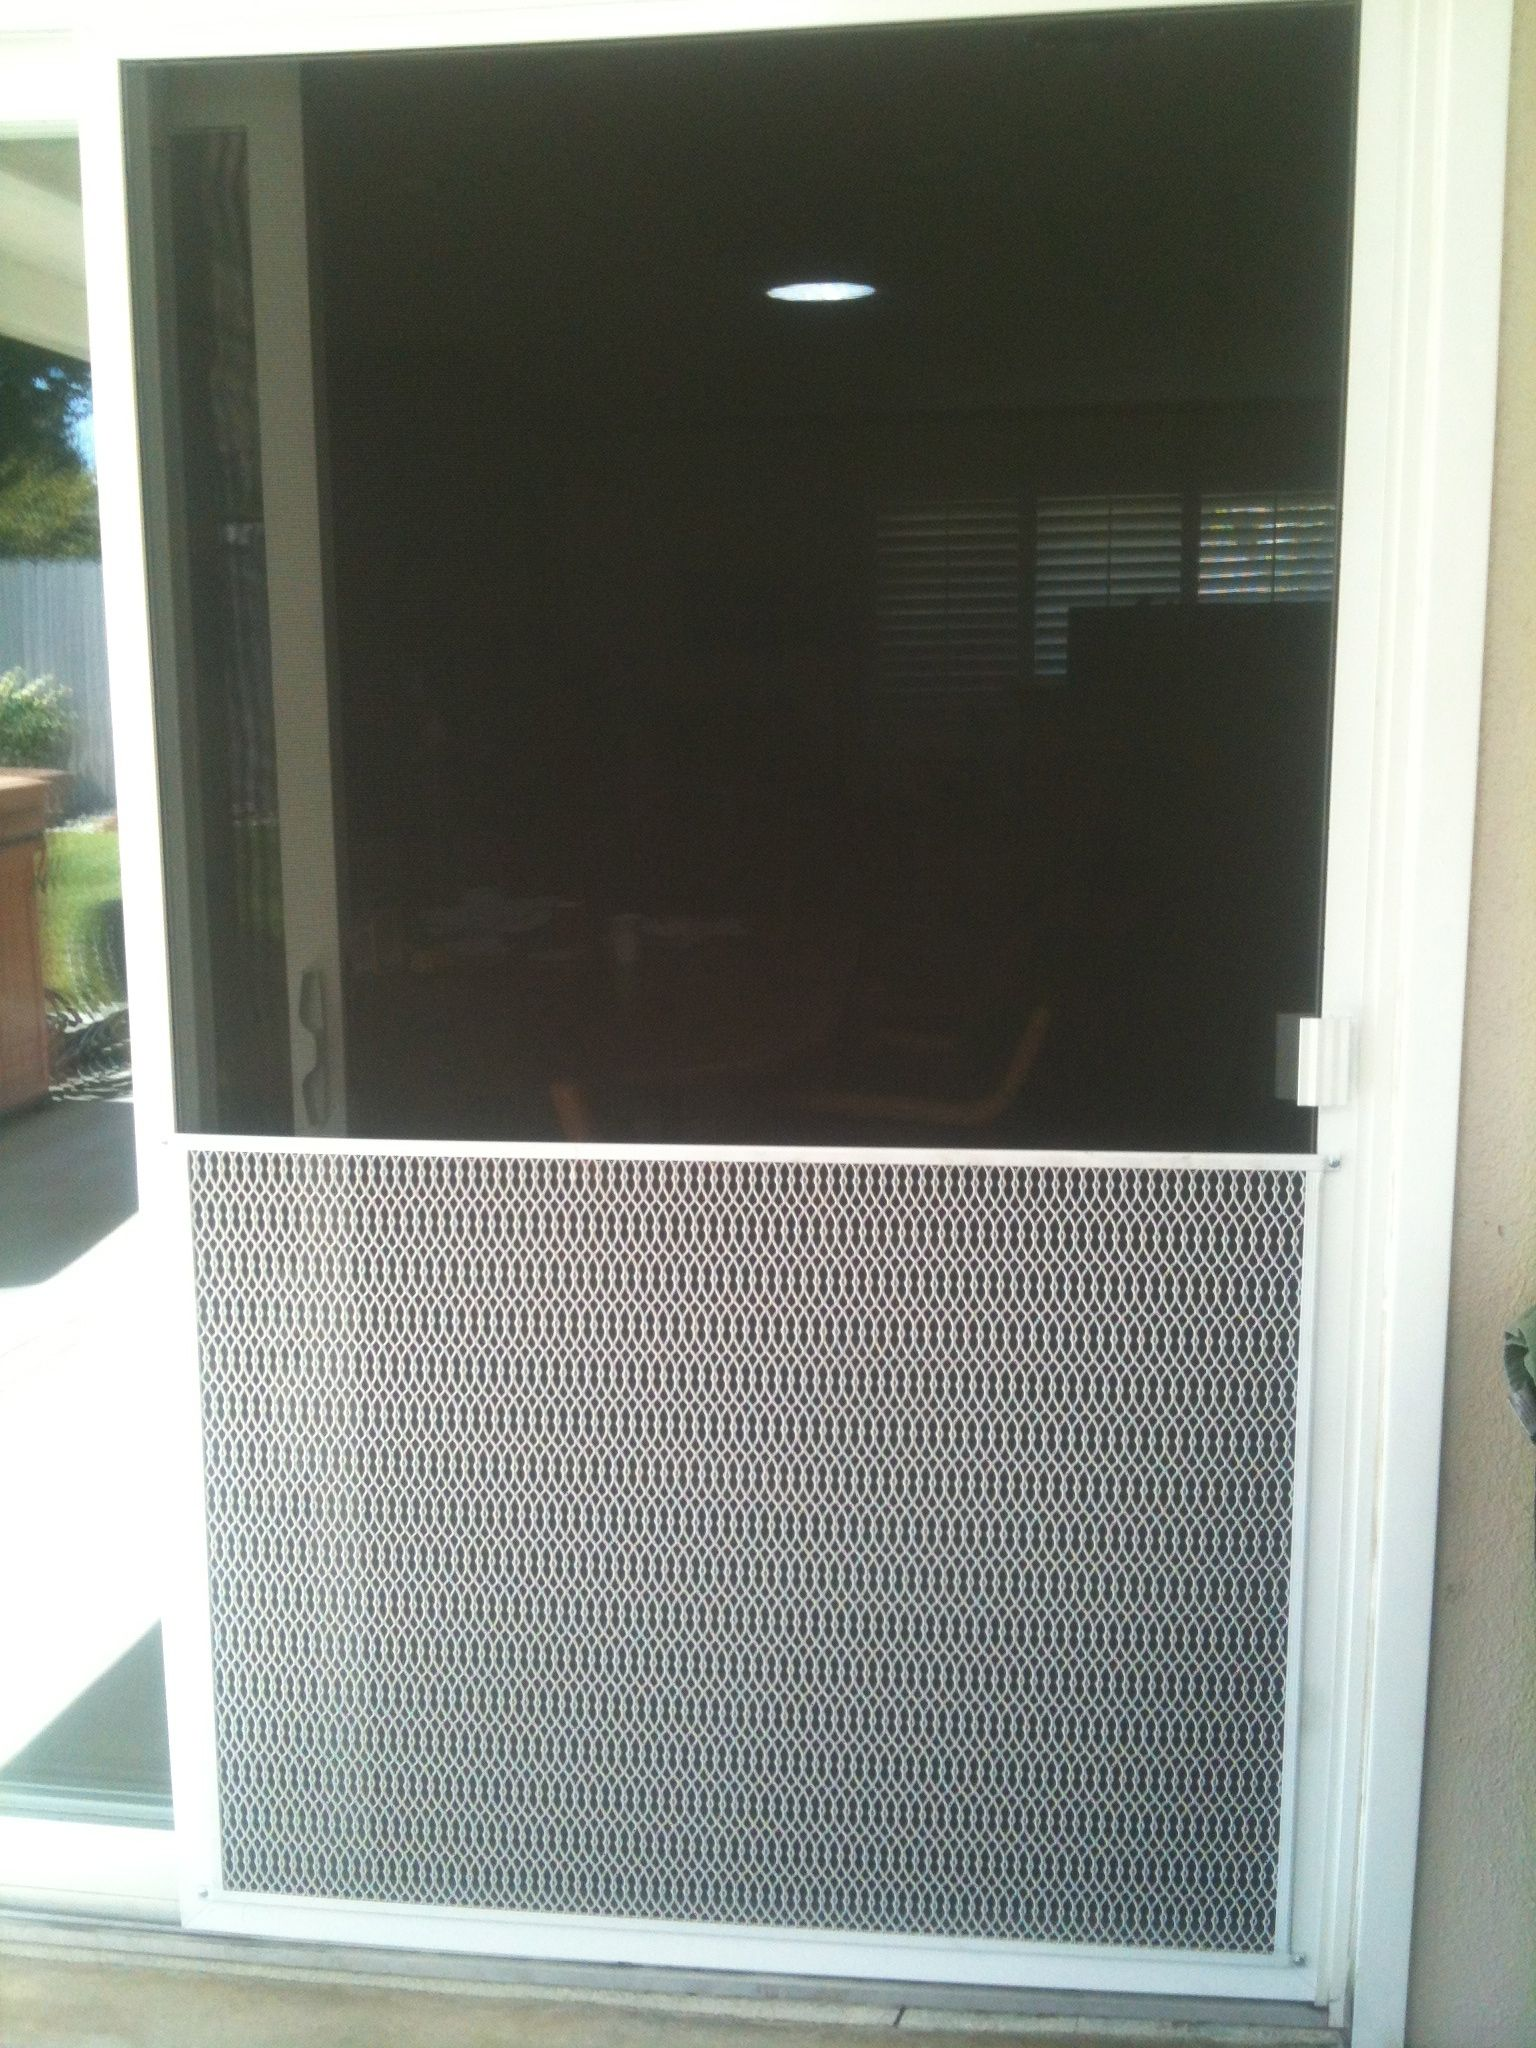 Door Screen Guards For Pets Sliding Screen Doors Patio Screen